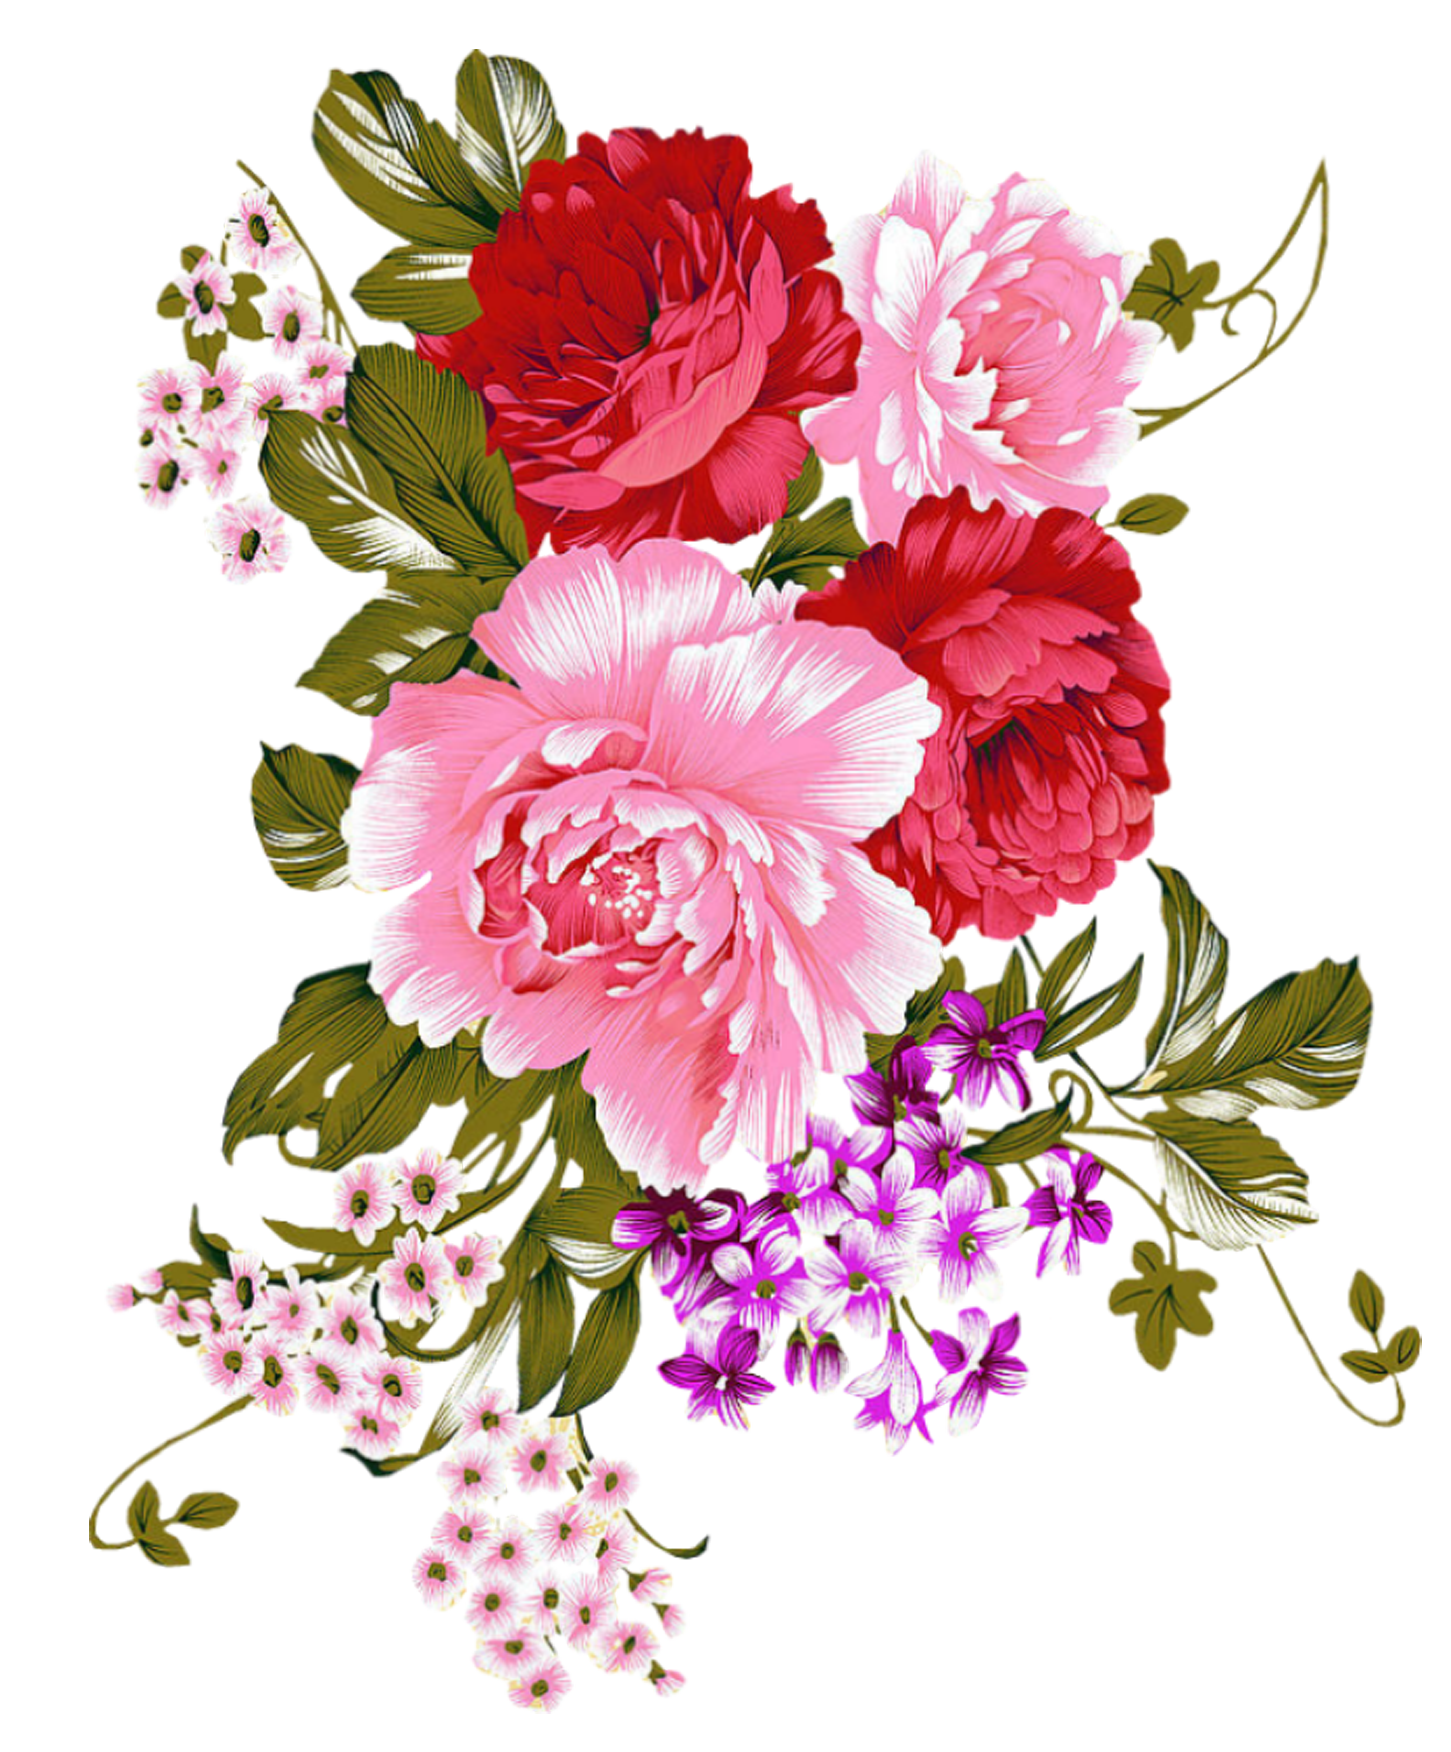 Peony crown clipart clipart black and white Pin by ДжейДи on ВИНТАЖ. РЕТРО. КЛИПАРТ. | Pinterest | Kurti clipart black and white